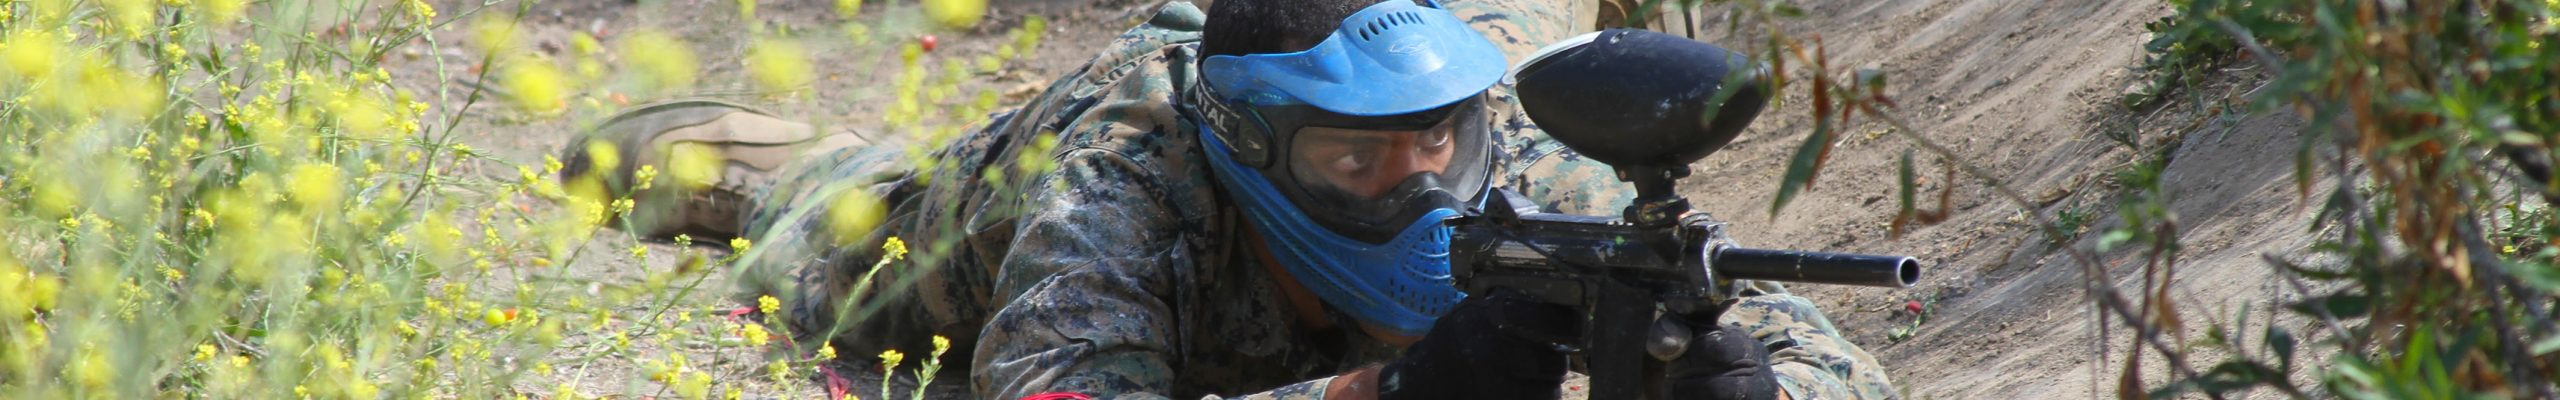 Recreation Paintball Camp Pendleton Marine